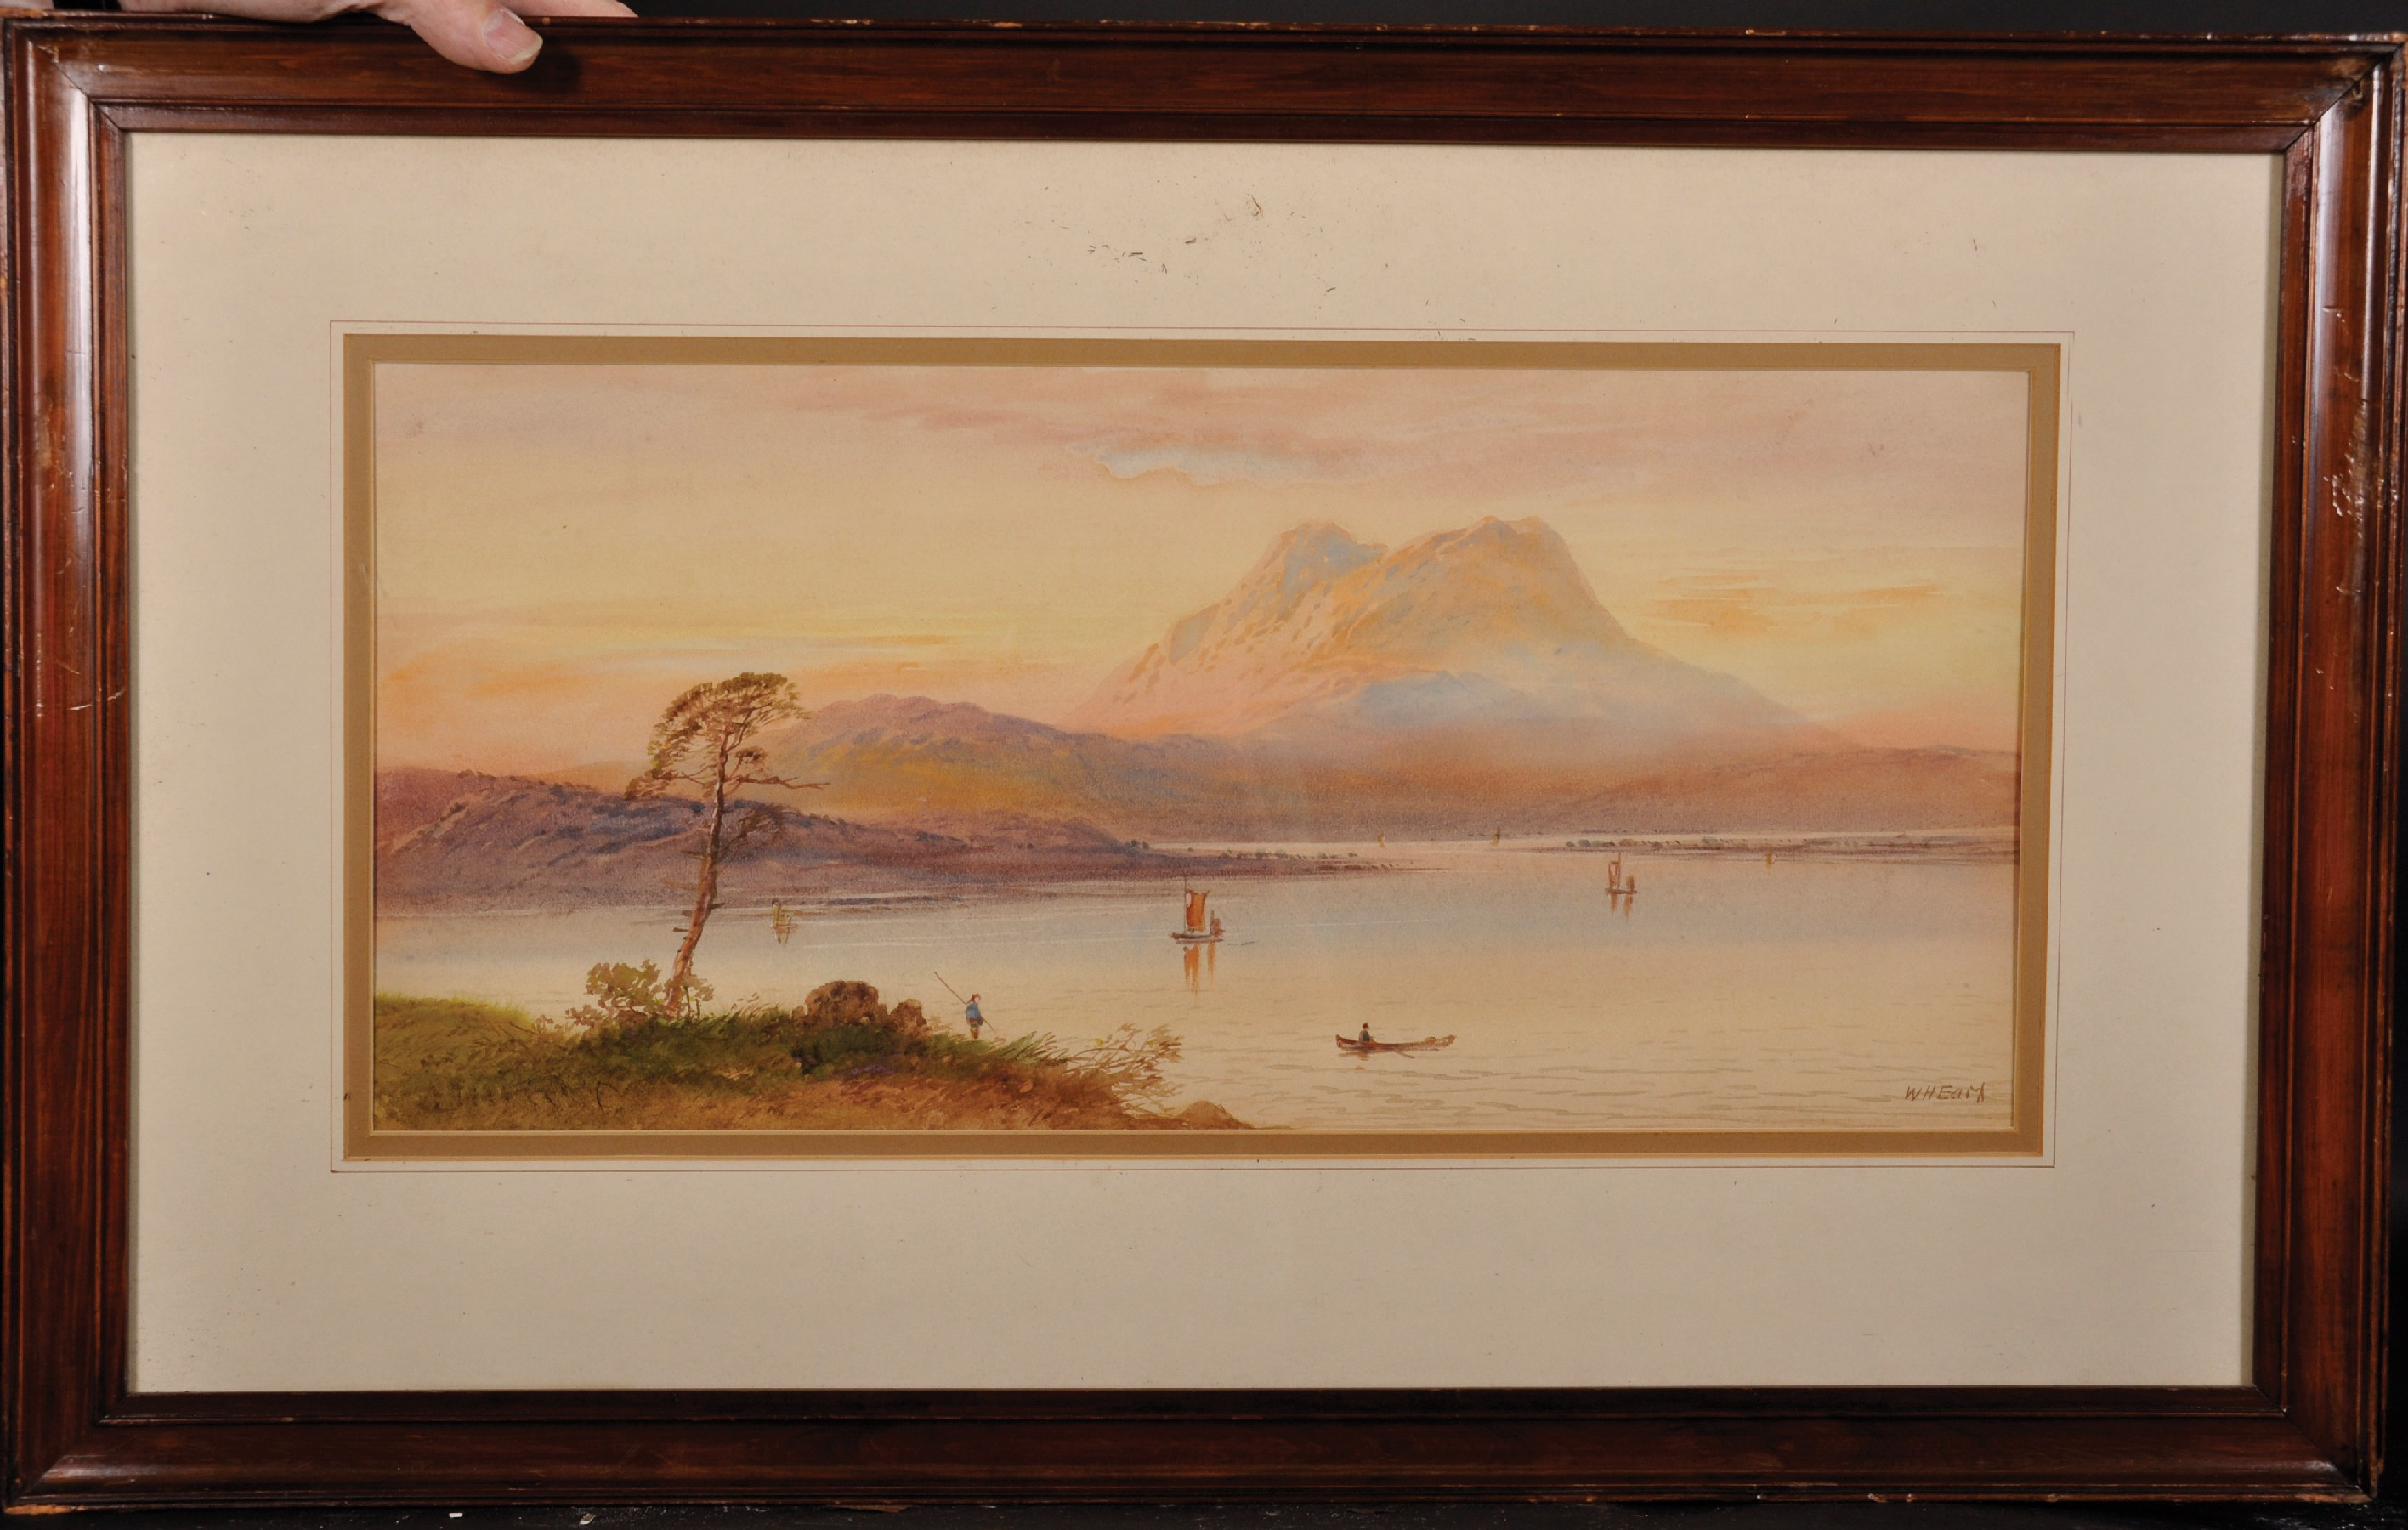 """William Henry Earp (1833- ) British. A Mountainous River Landscape, Watercolour, Signed, 10"""" x 21. - Image 4 of 7"""